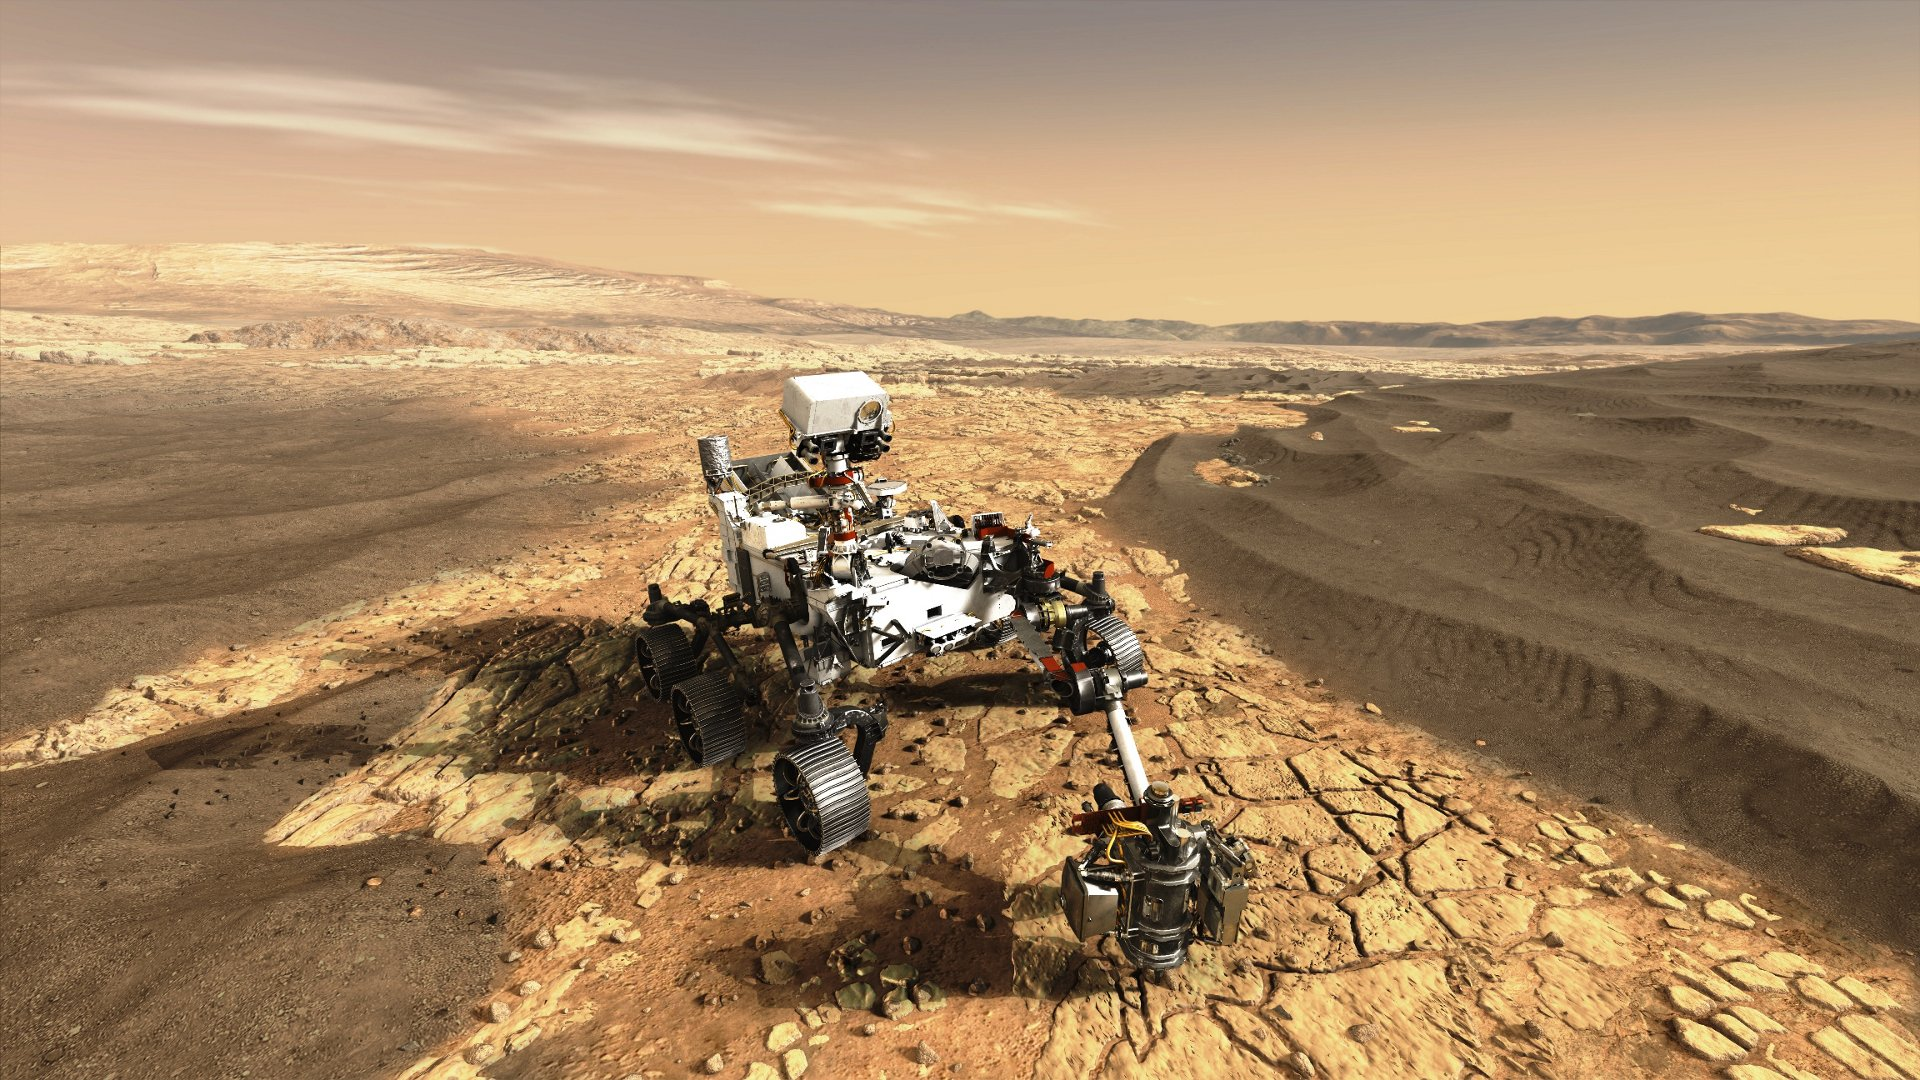 Key Airbus technology will be on board Perseverance Mars rover: the MEDA meteorological station will provide scientists with valuable Mars weather data and the High Gain Antenna System will ensure a high-speed comms link with Earth for the duration of the MARS2020 mission.